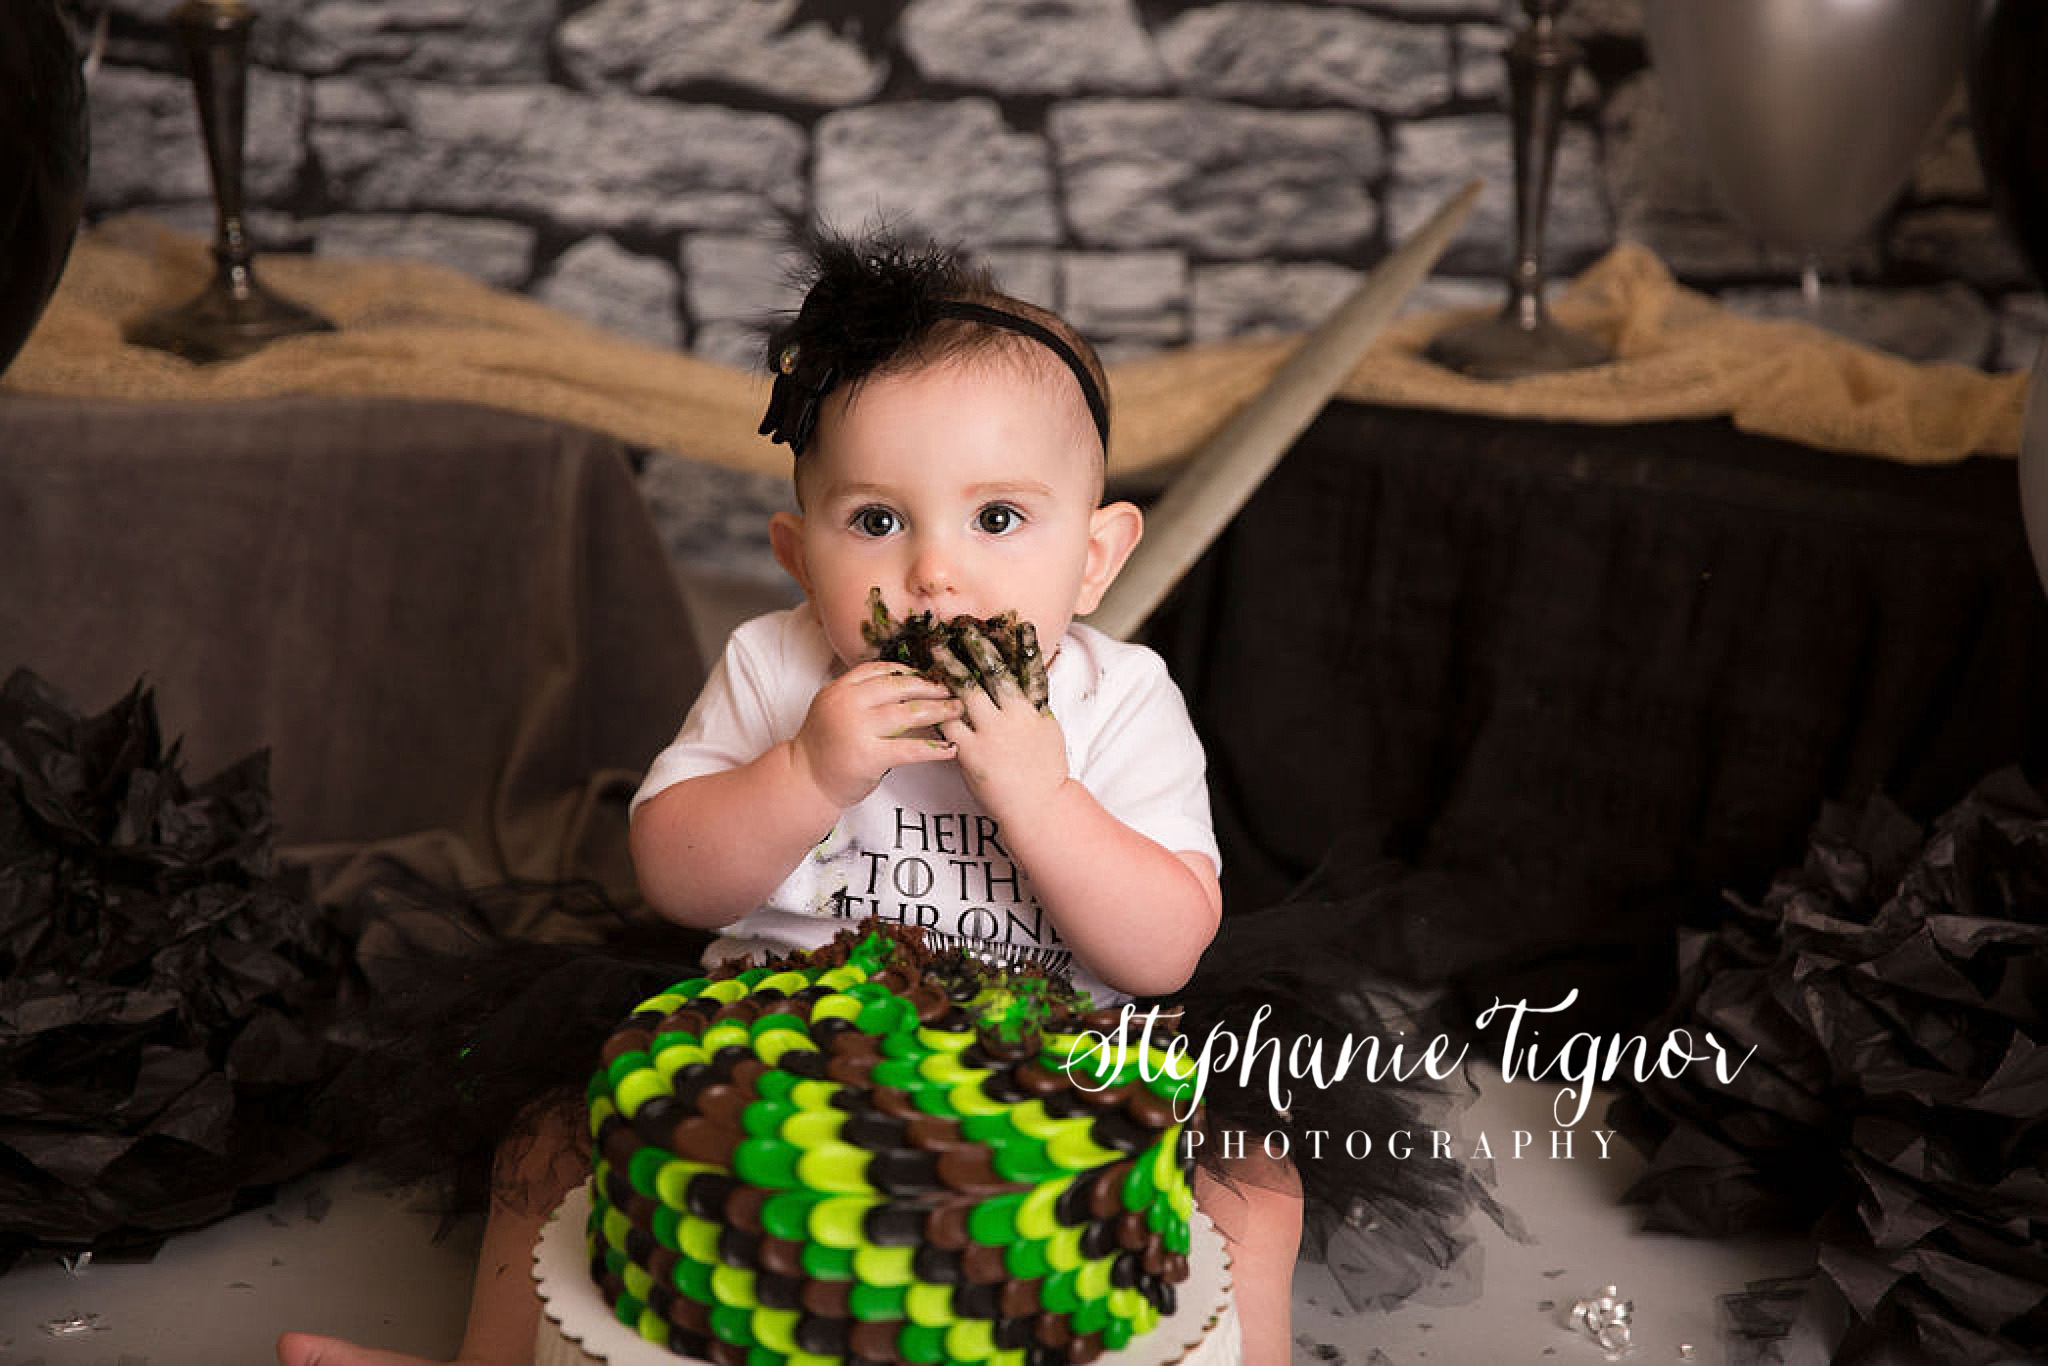 Stephanie Tignor Photography | Fredericksburg VA Cake Smash Photographer | Warrenton VA Cake Smash Photographer | Stafford VA Cake Smash Photographer | Cake Smash Photographer, Game of Thrones cake smash, GOT cake smash, Arya inspired cake smash, Game of Thrones inspired cake smash